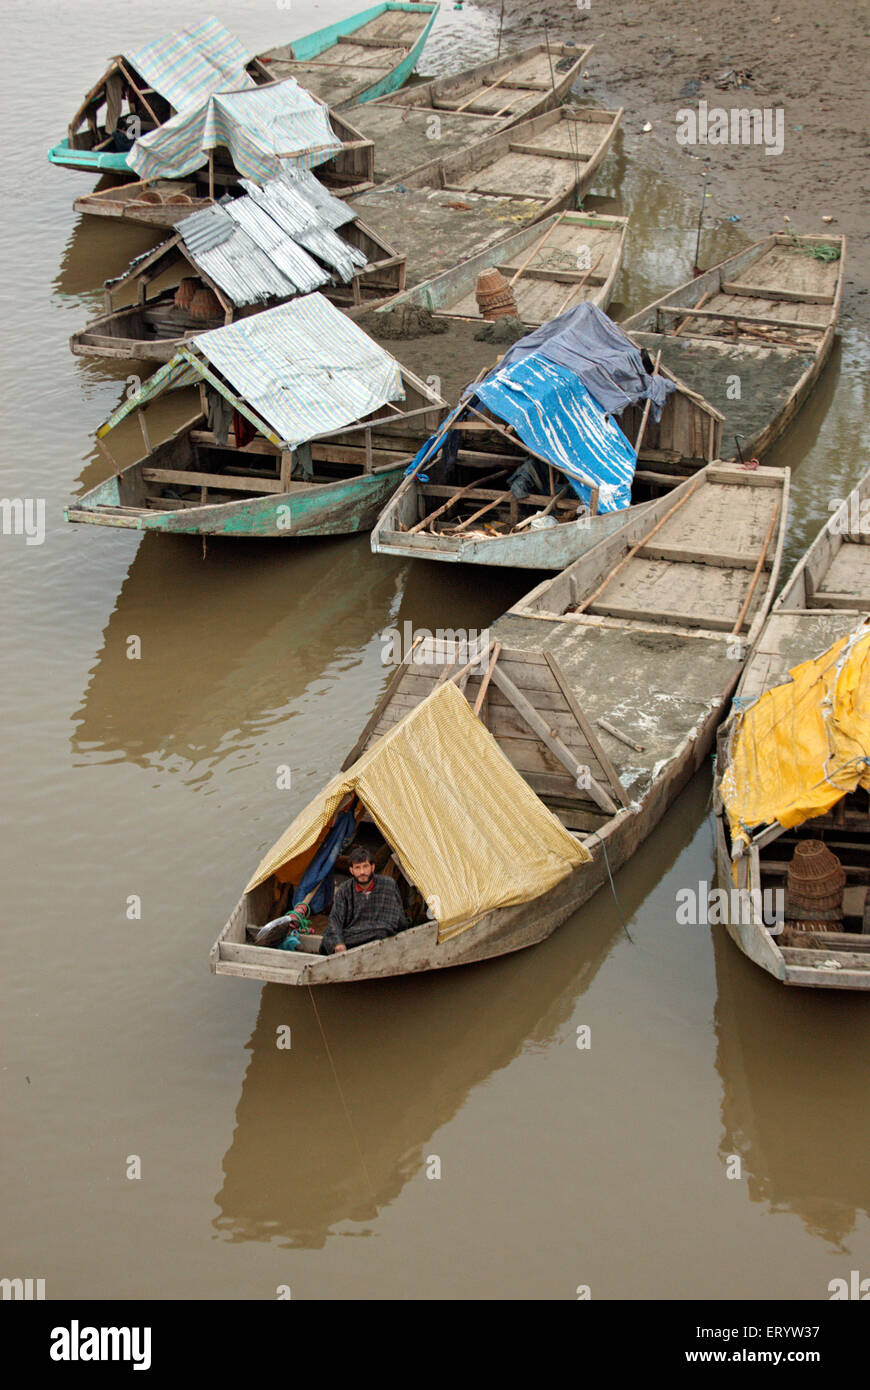 Sand excavating boats on the Jhelum river  ;  Sopore  ;  Baramulla District  ;  Jammu and Kashmir  ;  India NOMR - Stock Image